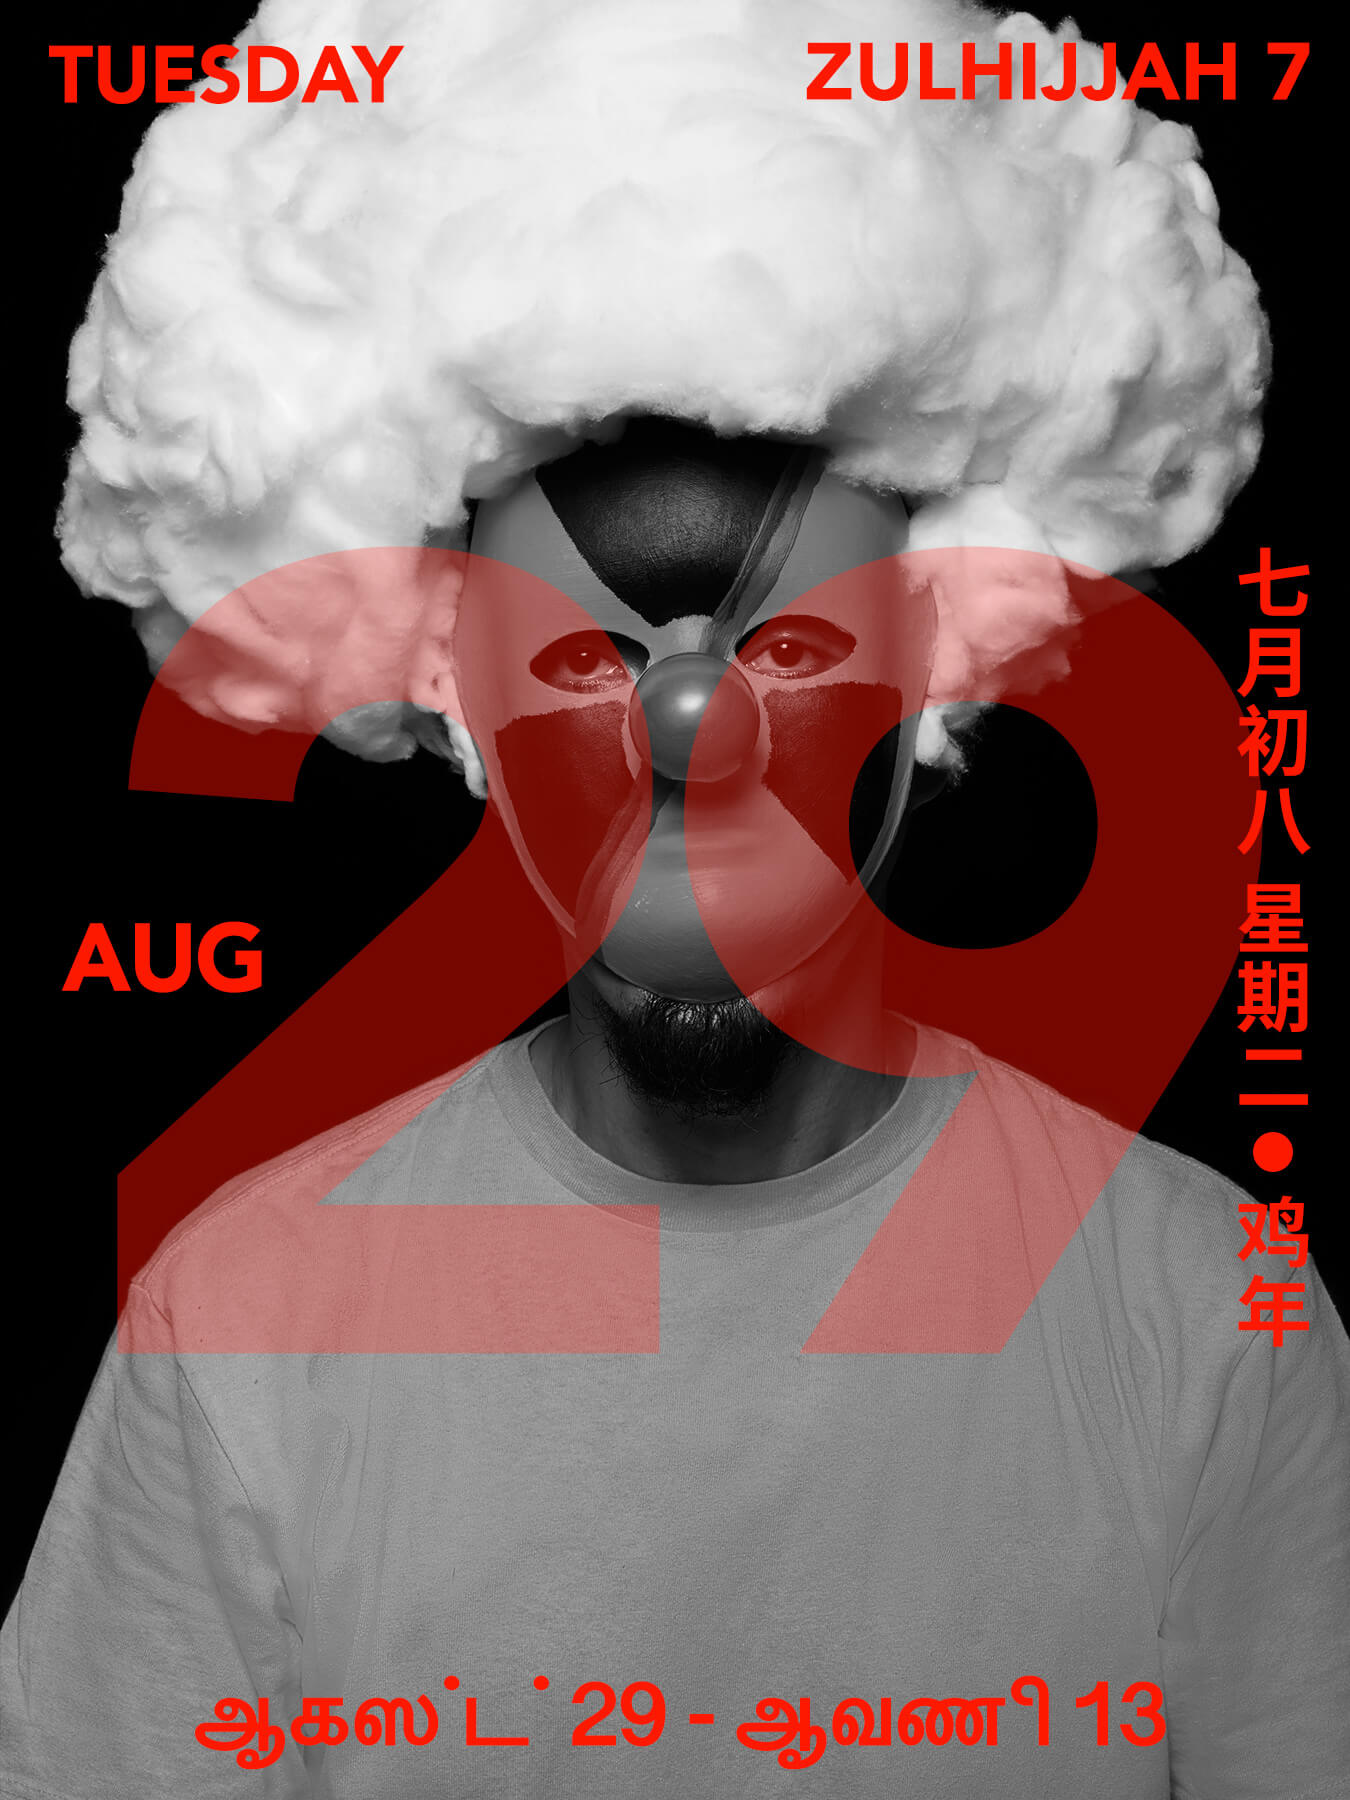 29 Aug 2017: Derong wears a yellow tee and has a nuclear-symbol face mask on, with a white poofy (cloud) wig